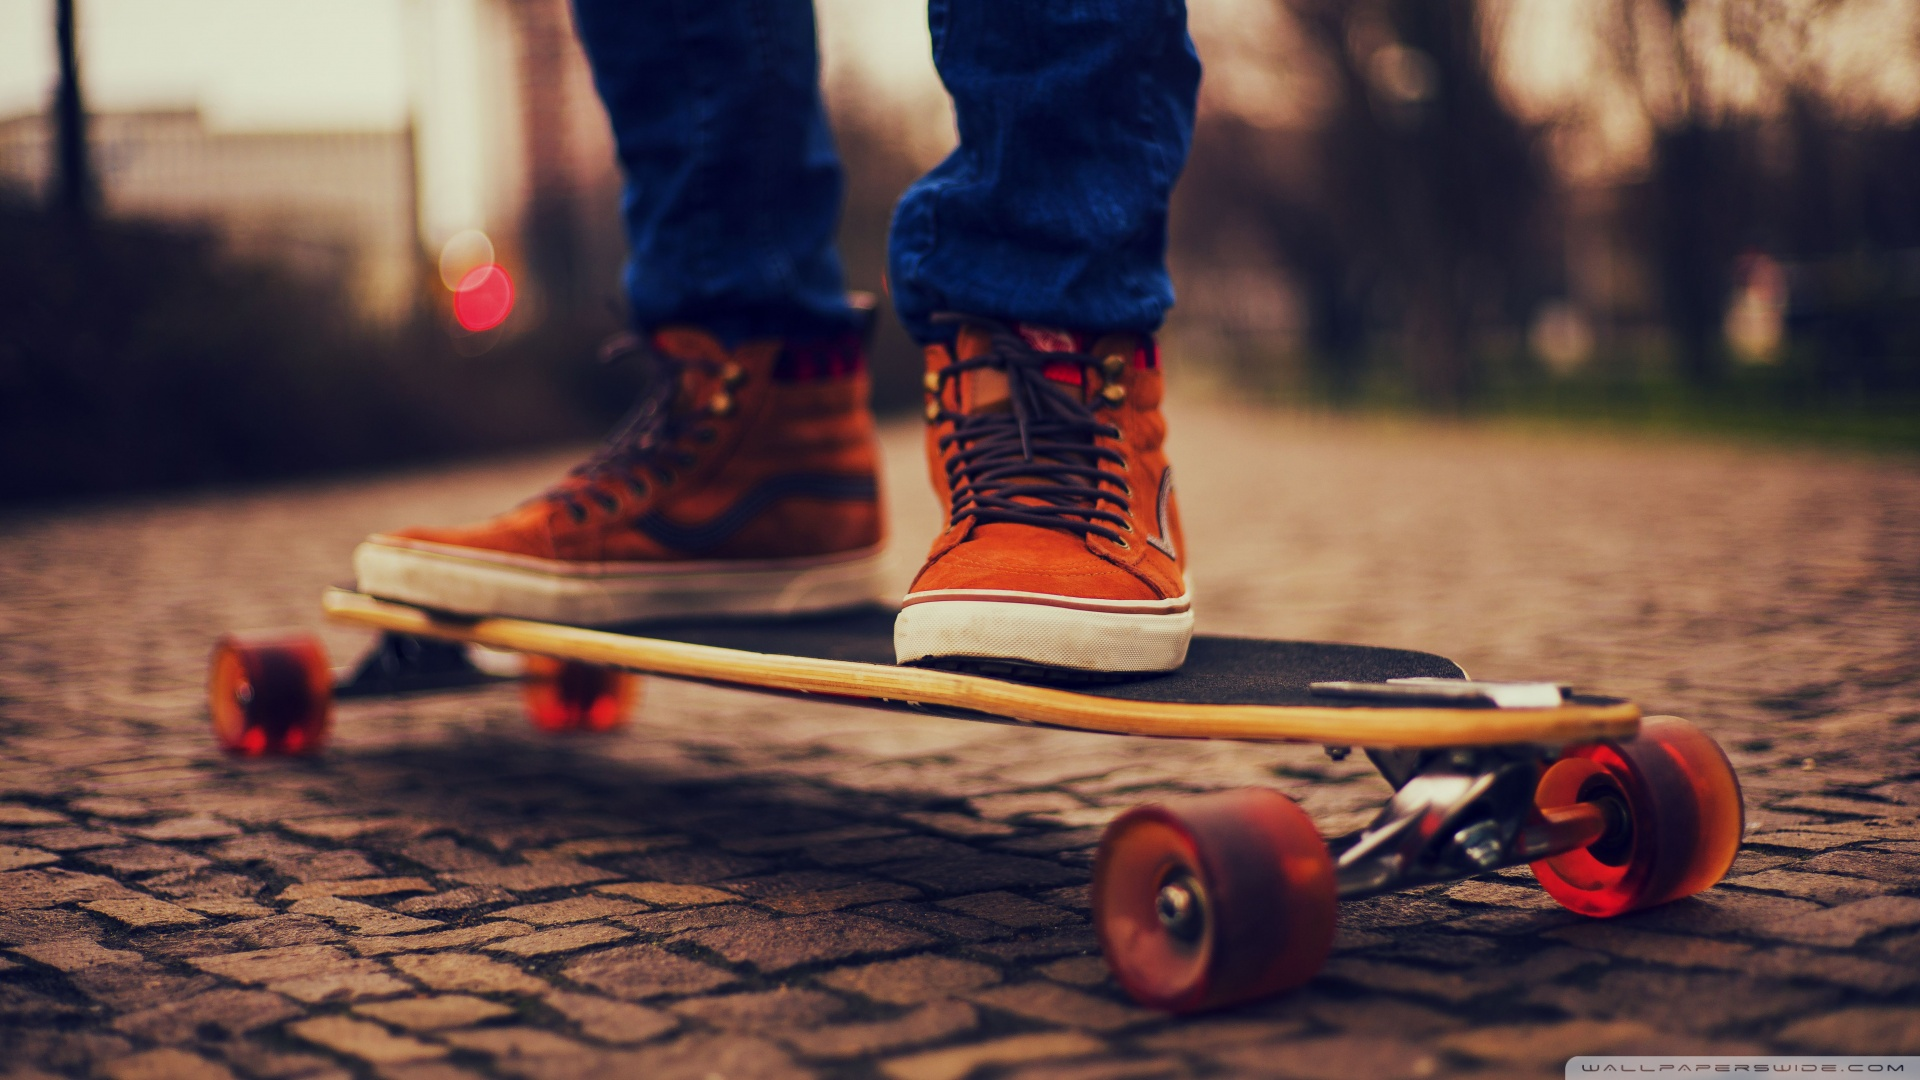 longboard_2-wallpaper-1920x1080